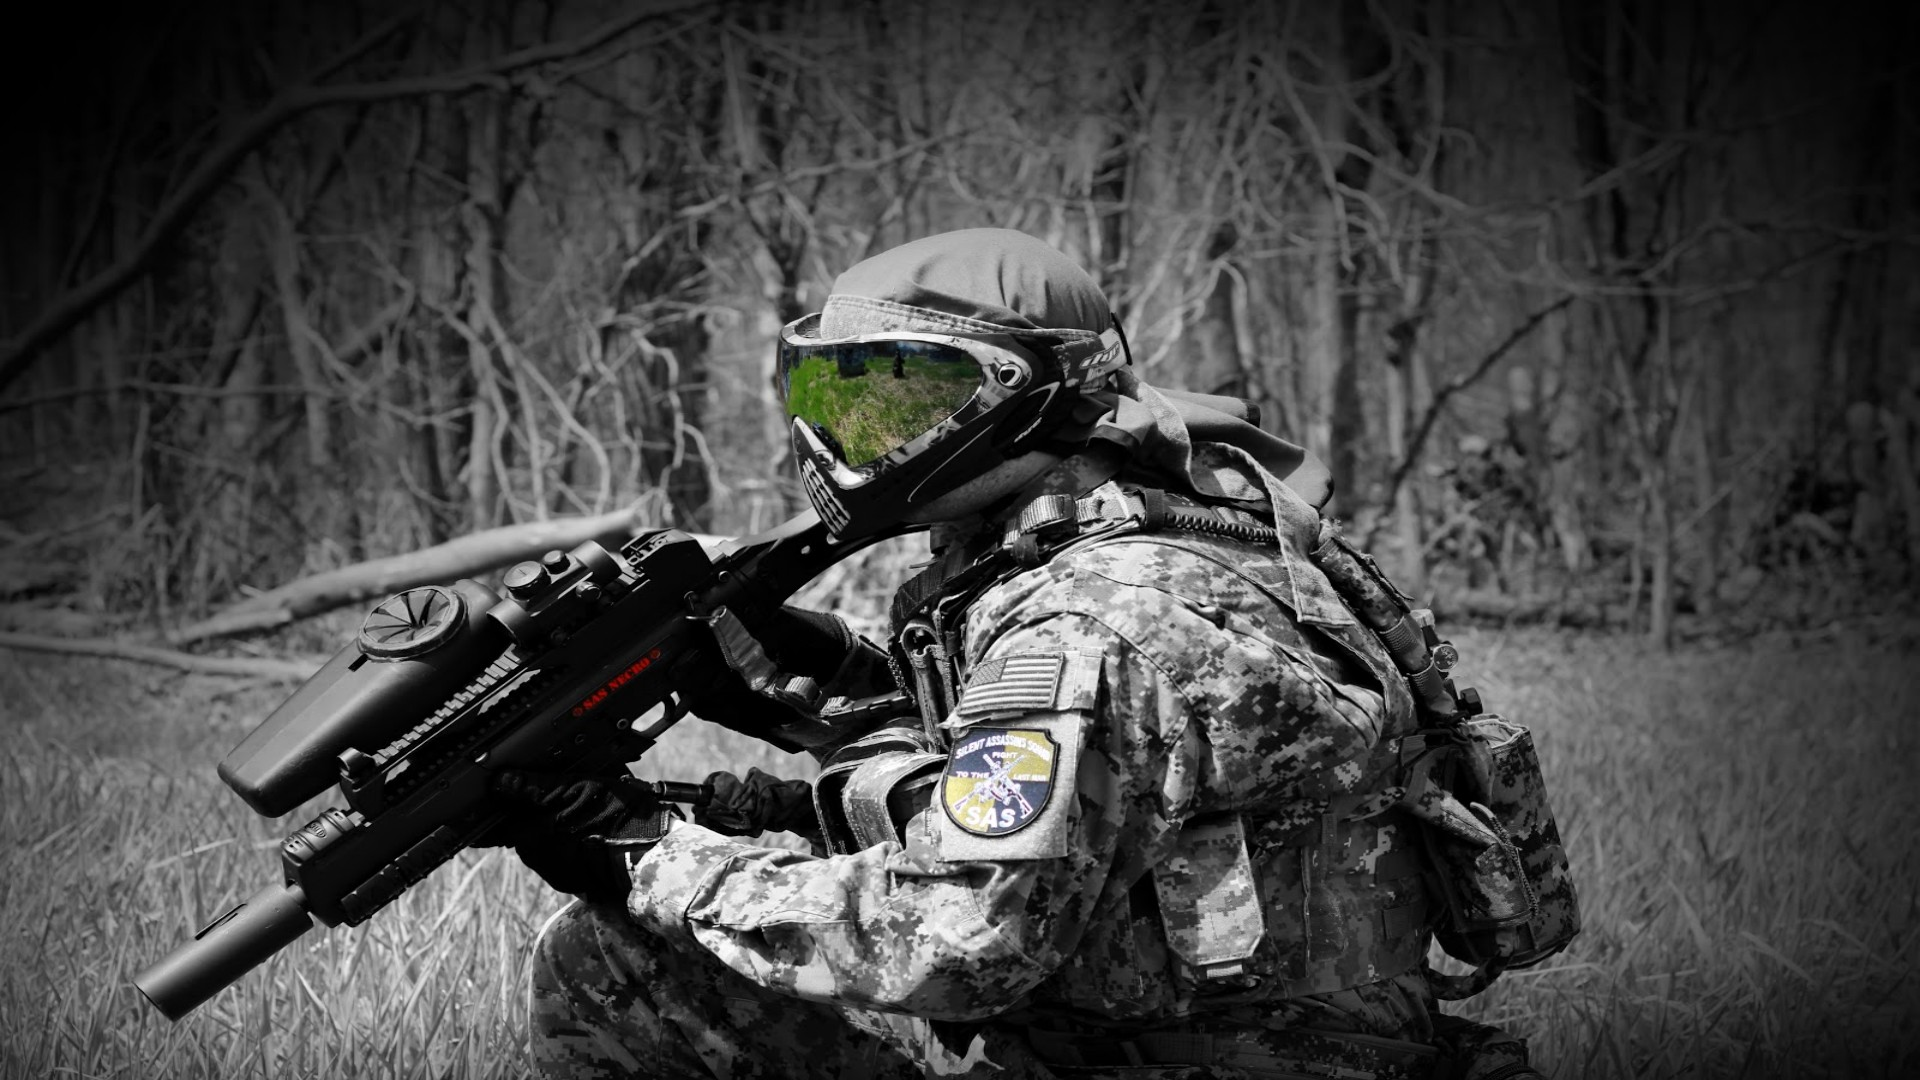 1920x1080 cia 2010 wallpaper by freddiemac on deviantart | Paintball | Pinterest |  deviantART